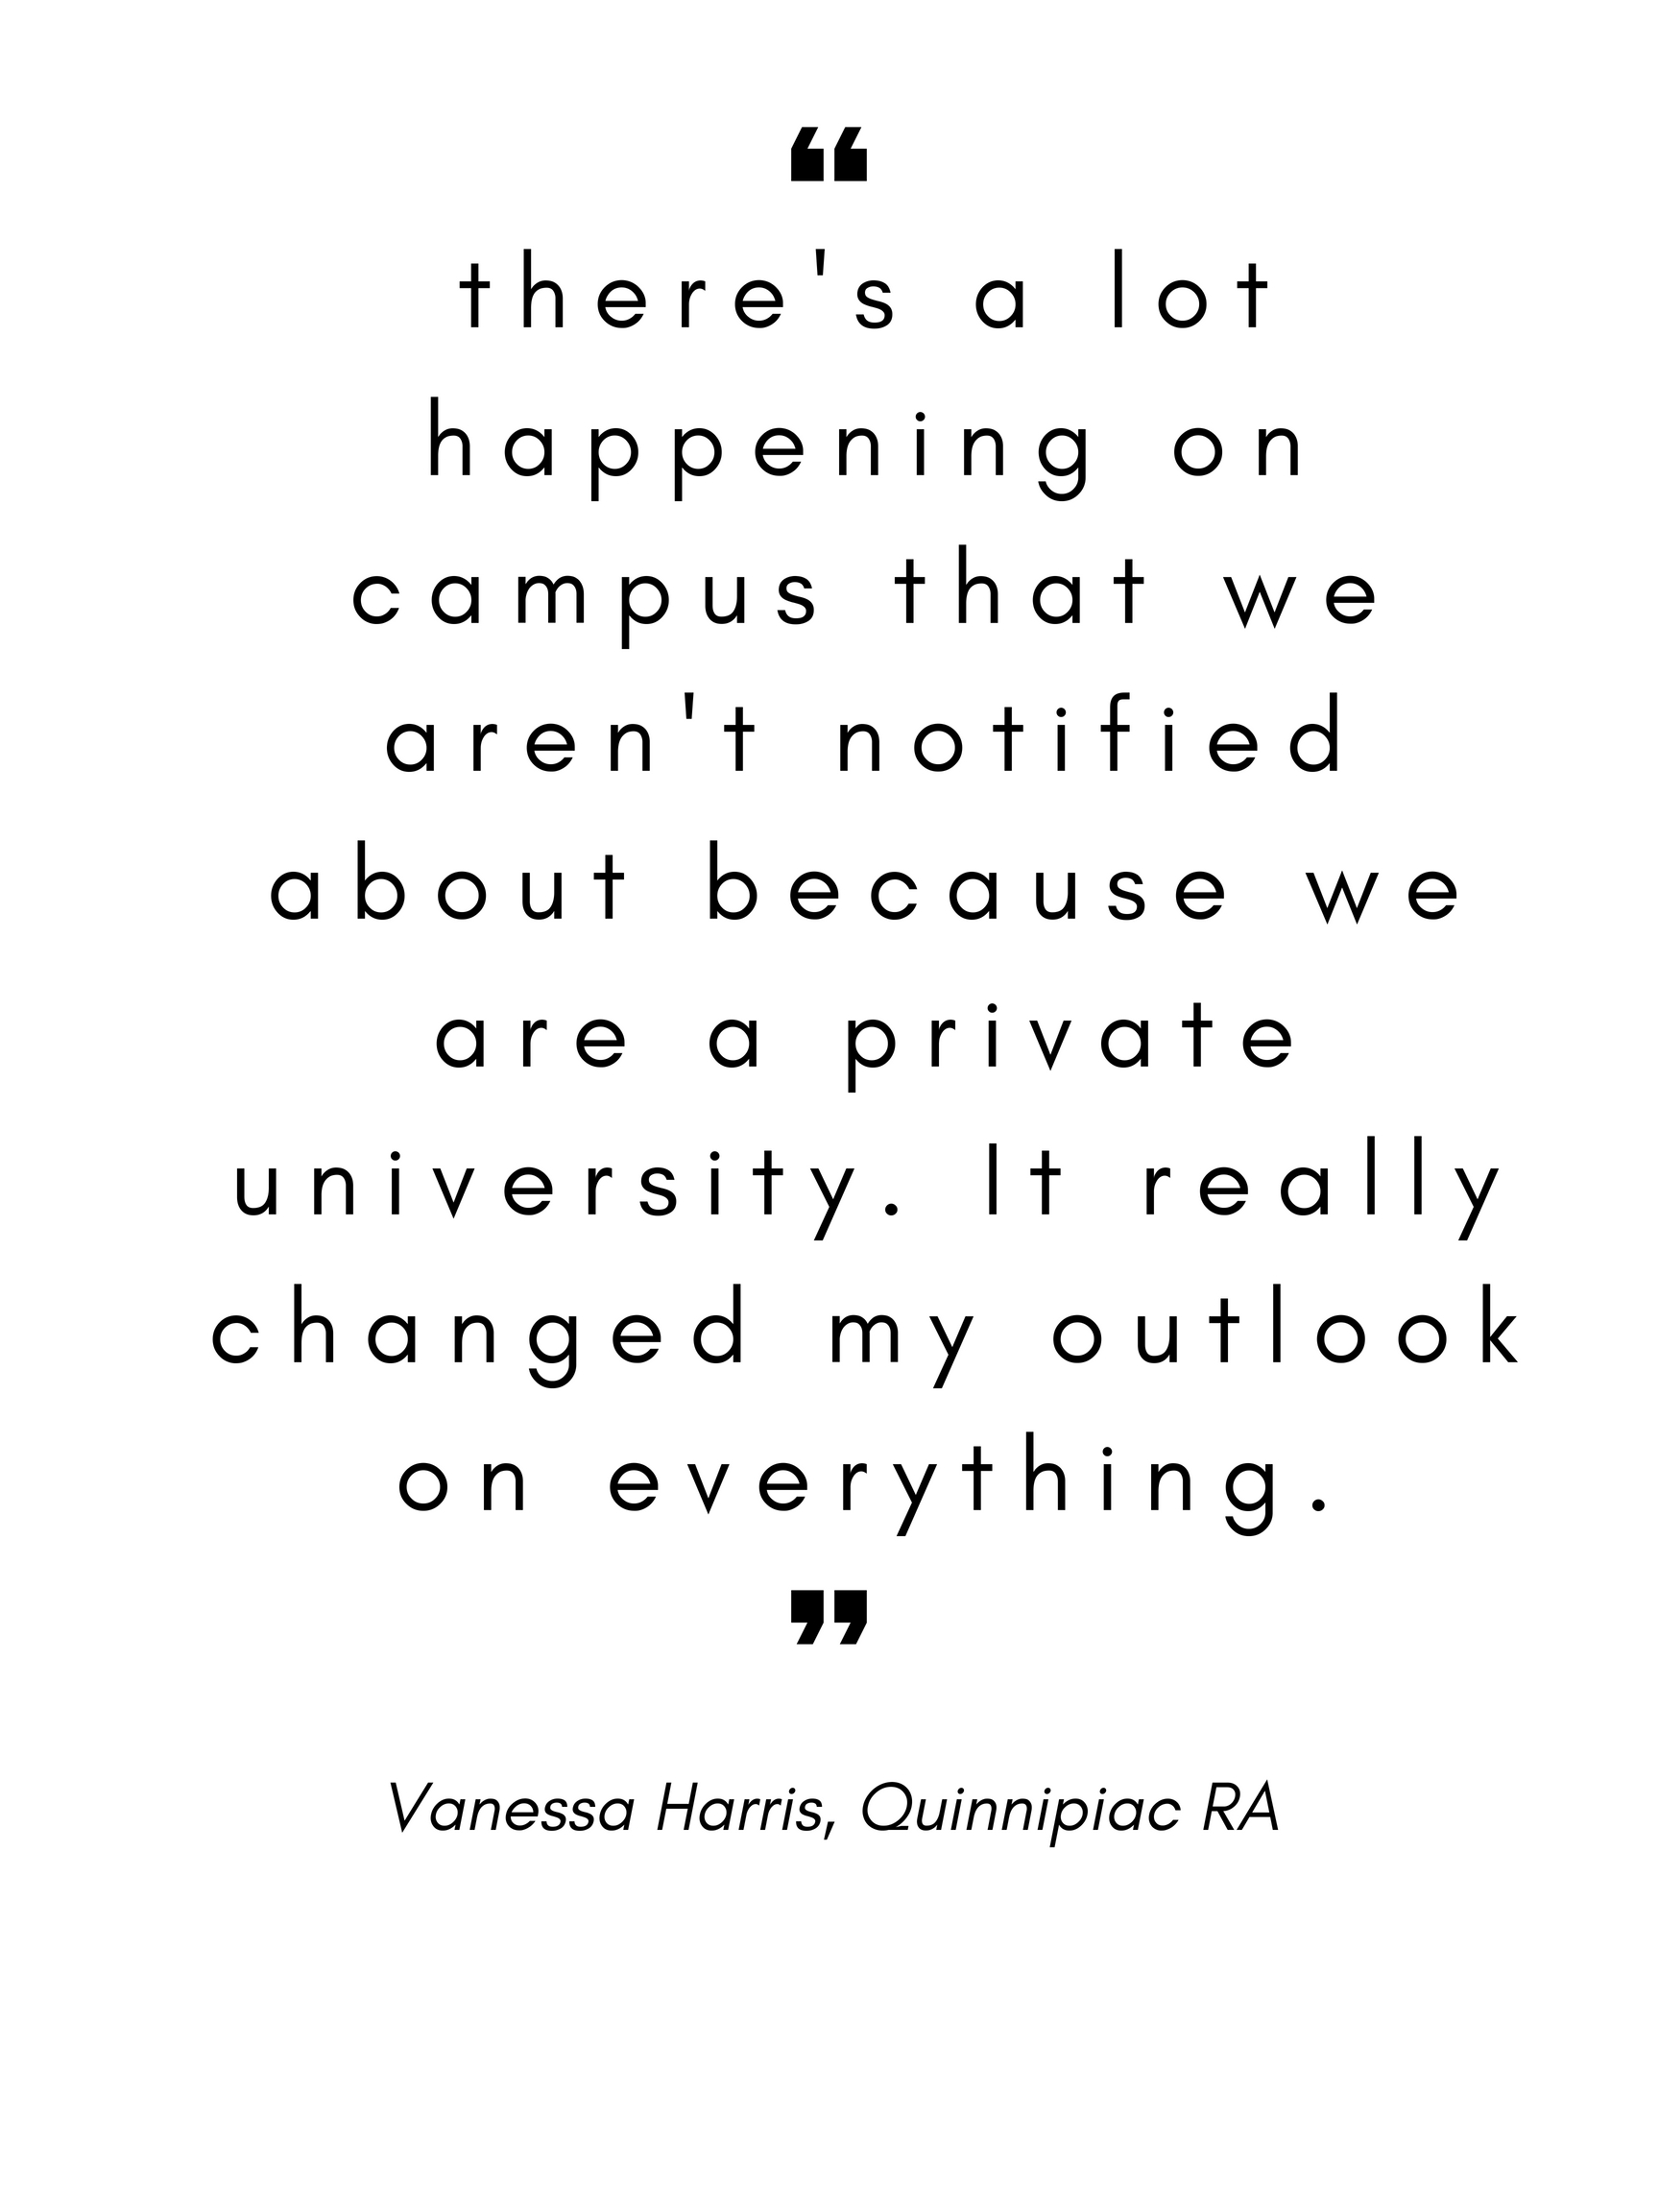 there's a lot happening on campus that we aren't notified about because we are a private university. It really changed my outlook on everything..jpg